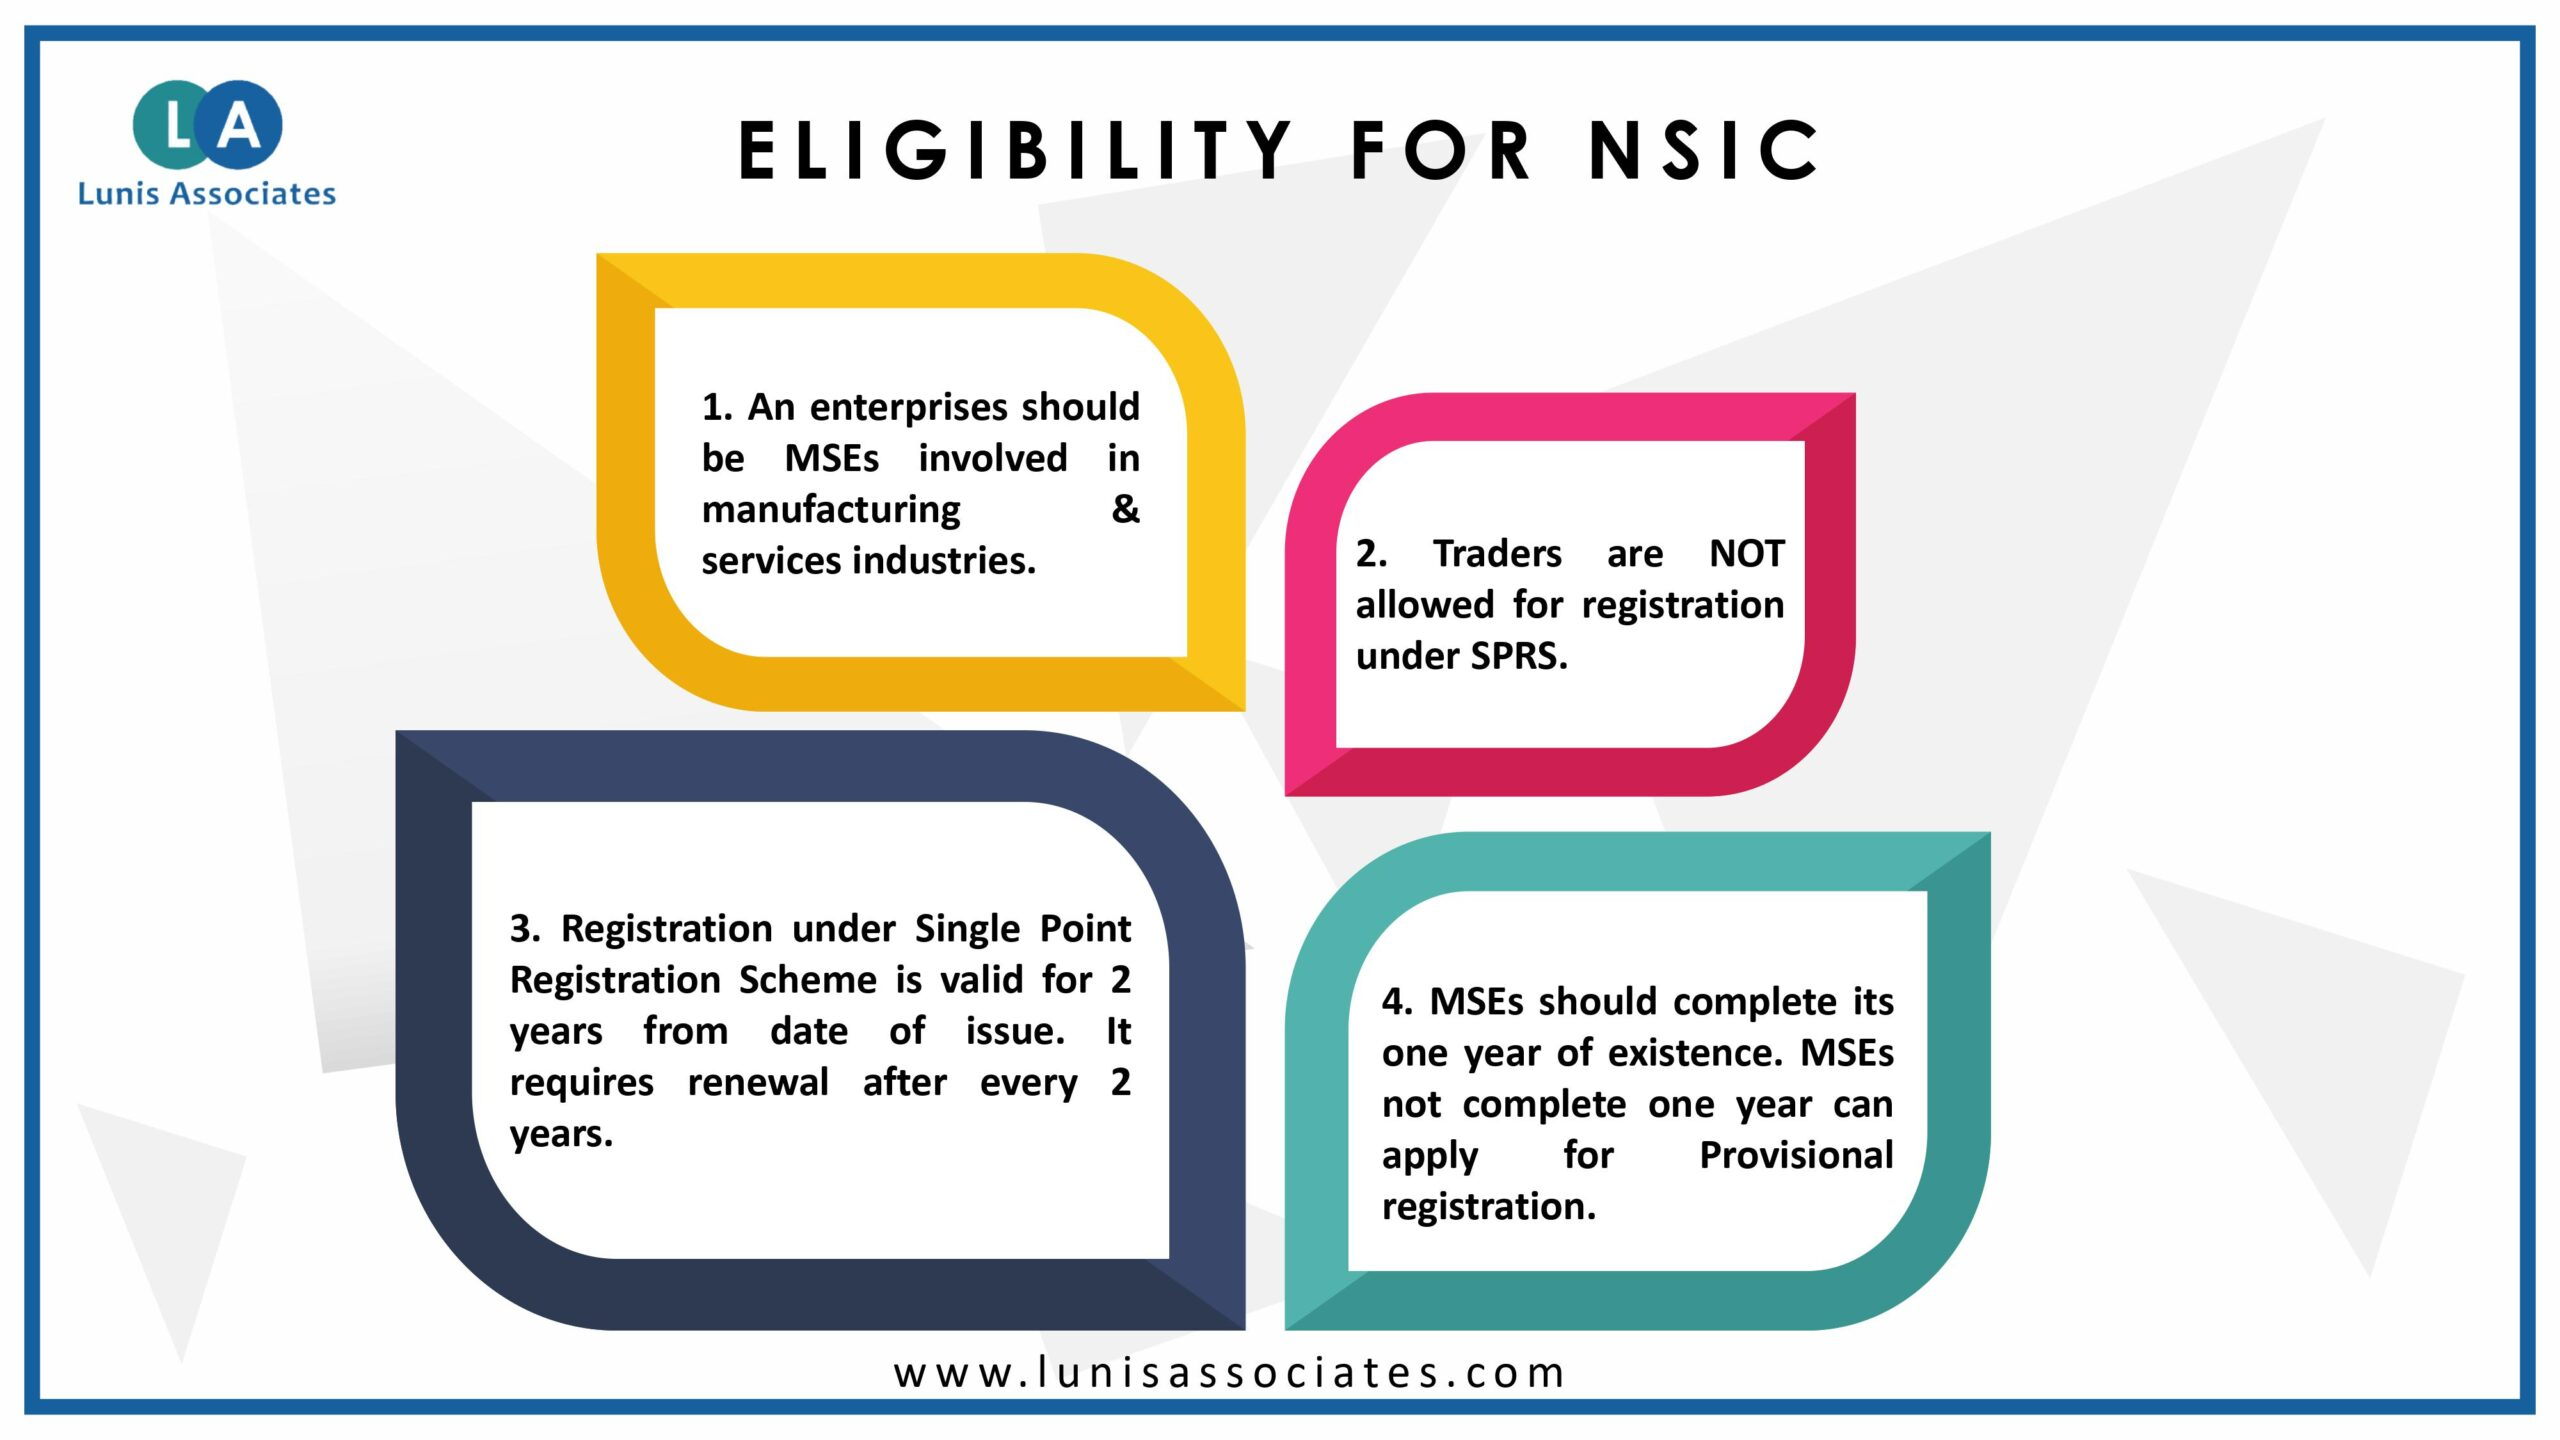 Eligibility For NSIC Registration